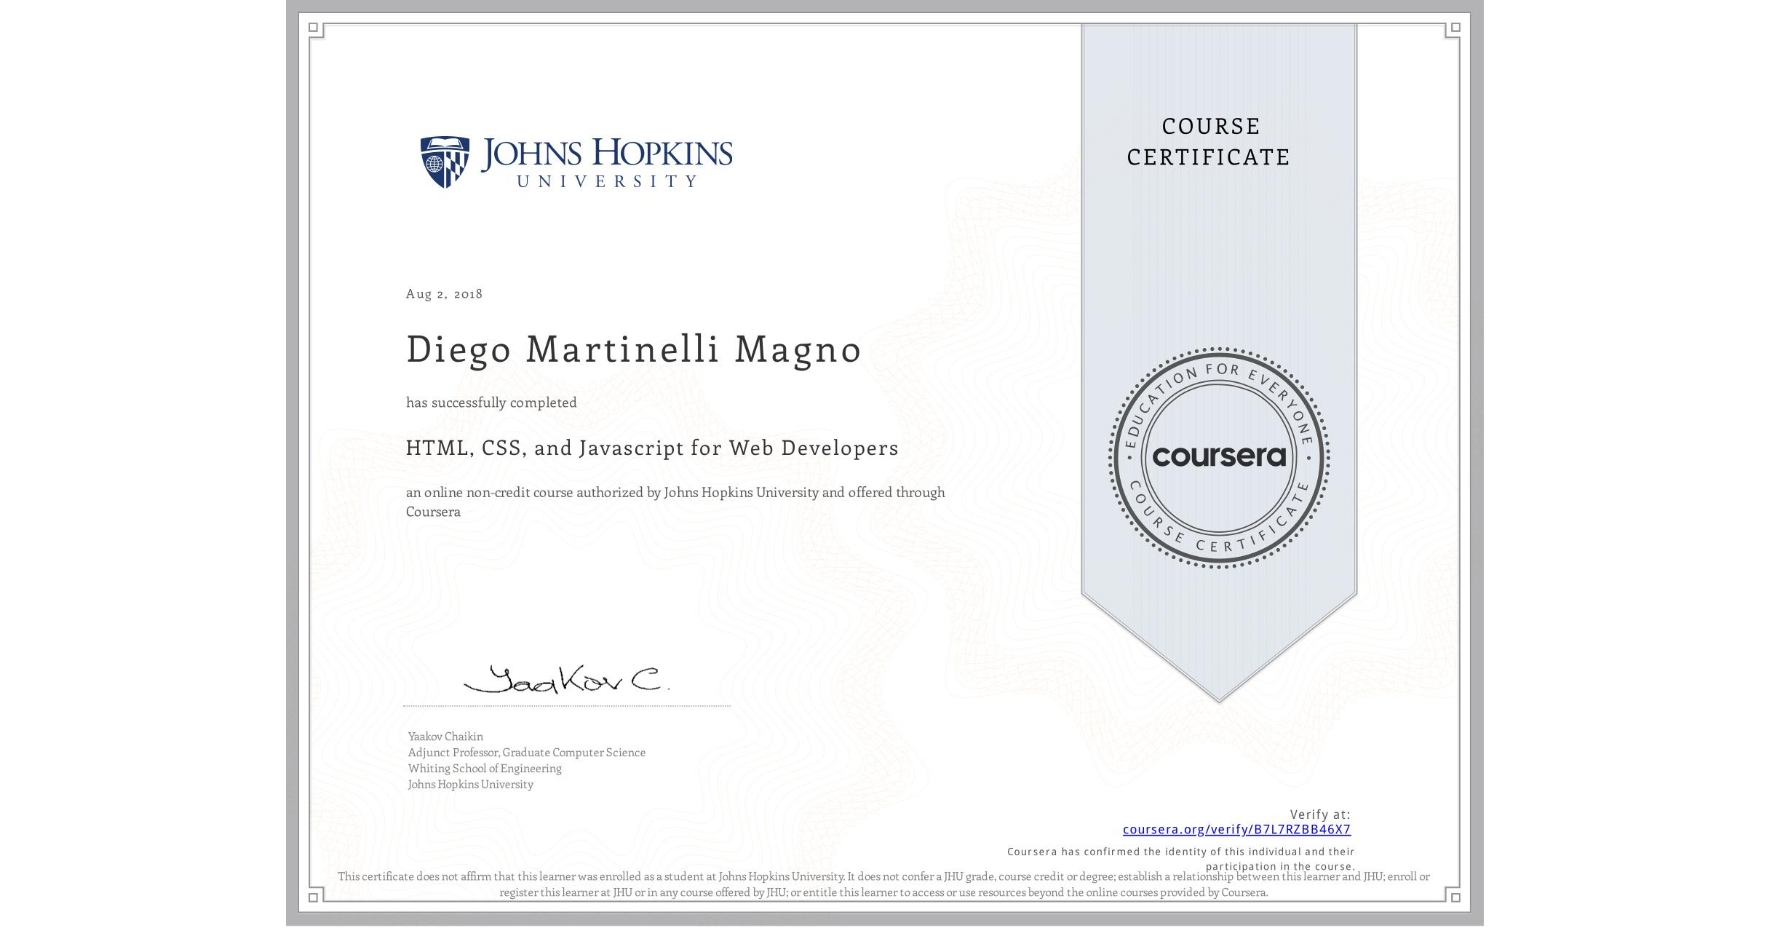 View certificate for Diego Martinelli Magno, HTML, CSS, and Javascript for Web Developers, an online non-credit course authorized by Johns Hopkins University and offered through Coursera